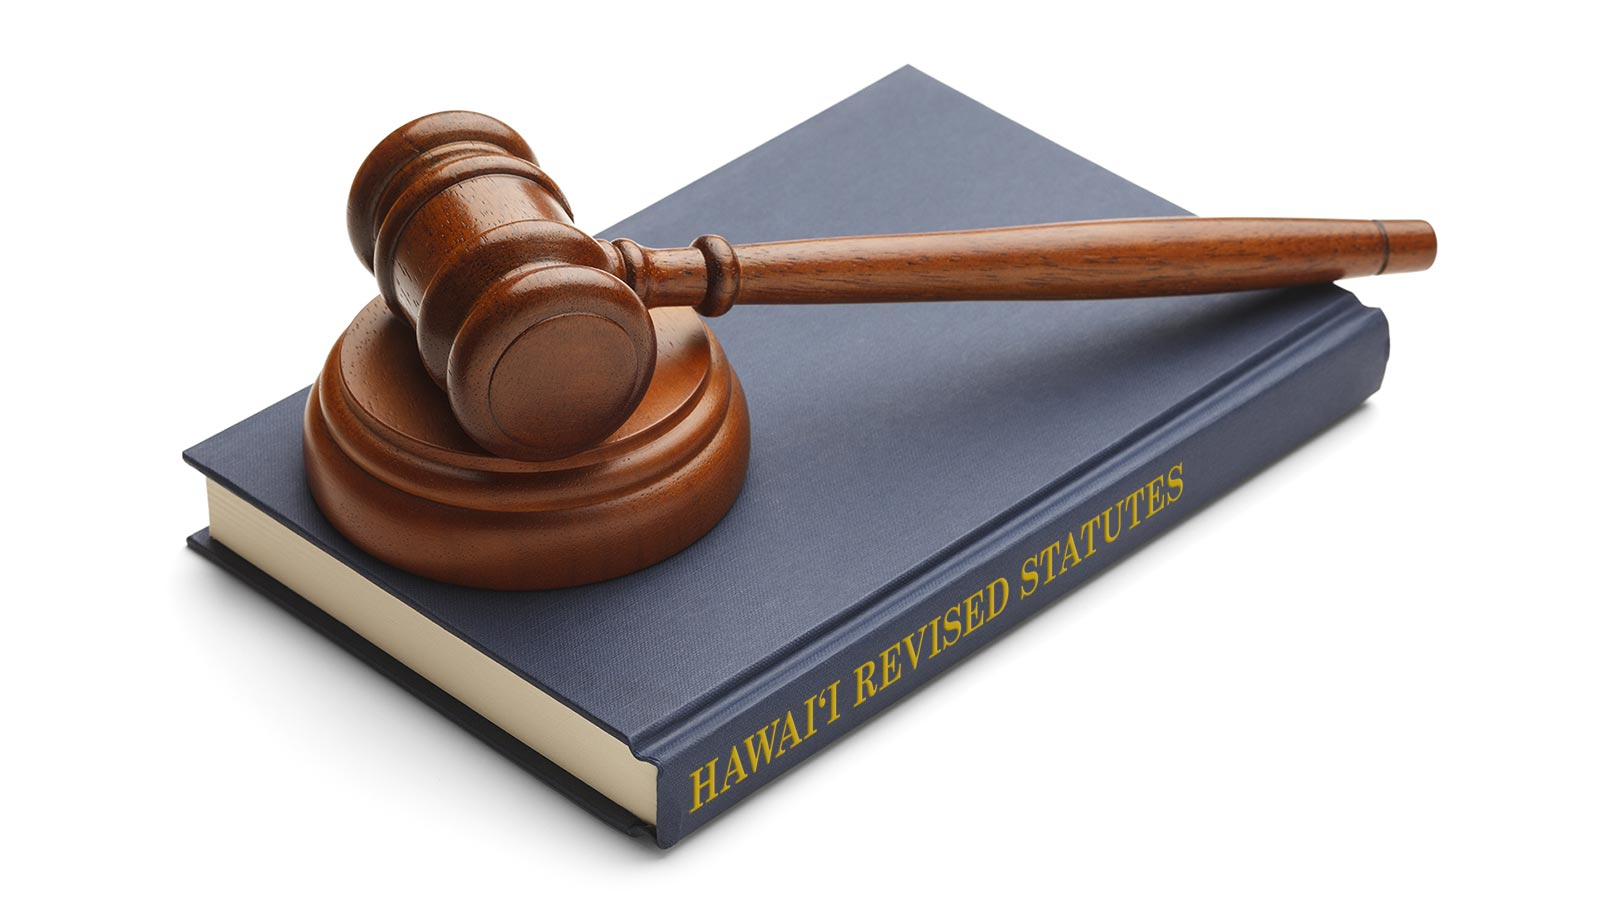 Practicing law is risky business — so the right coverage makes all the difference